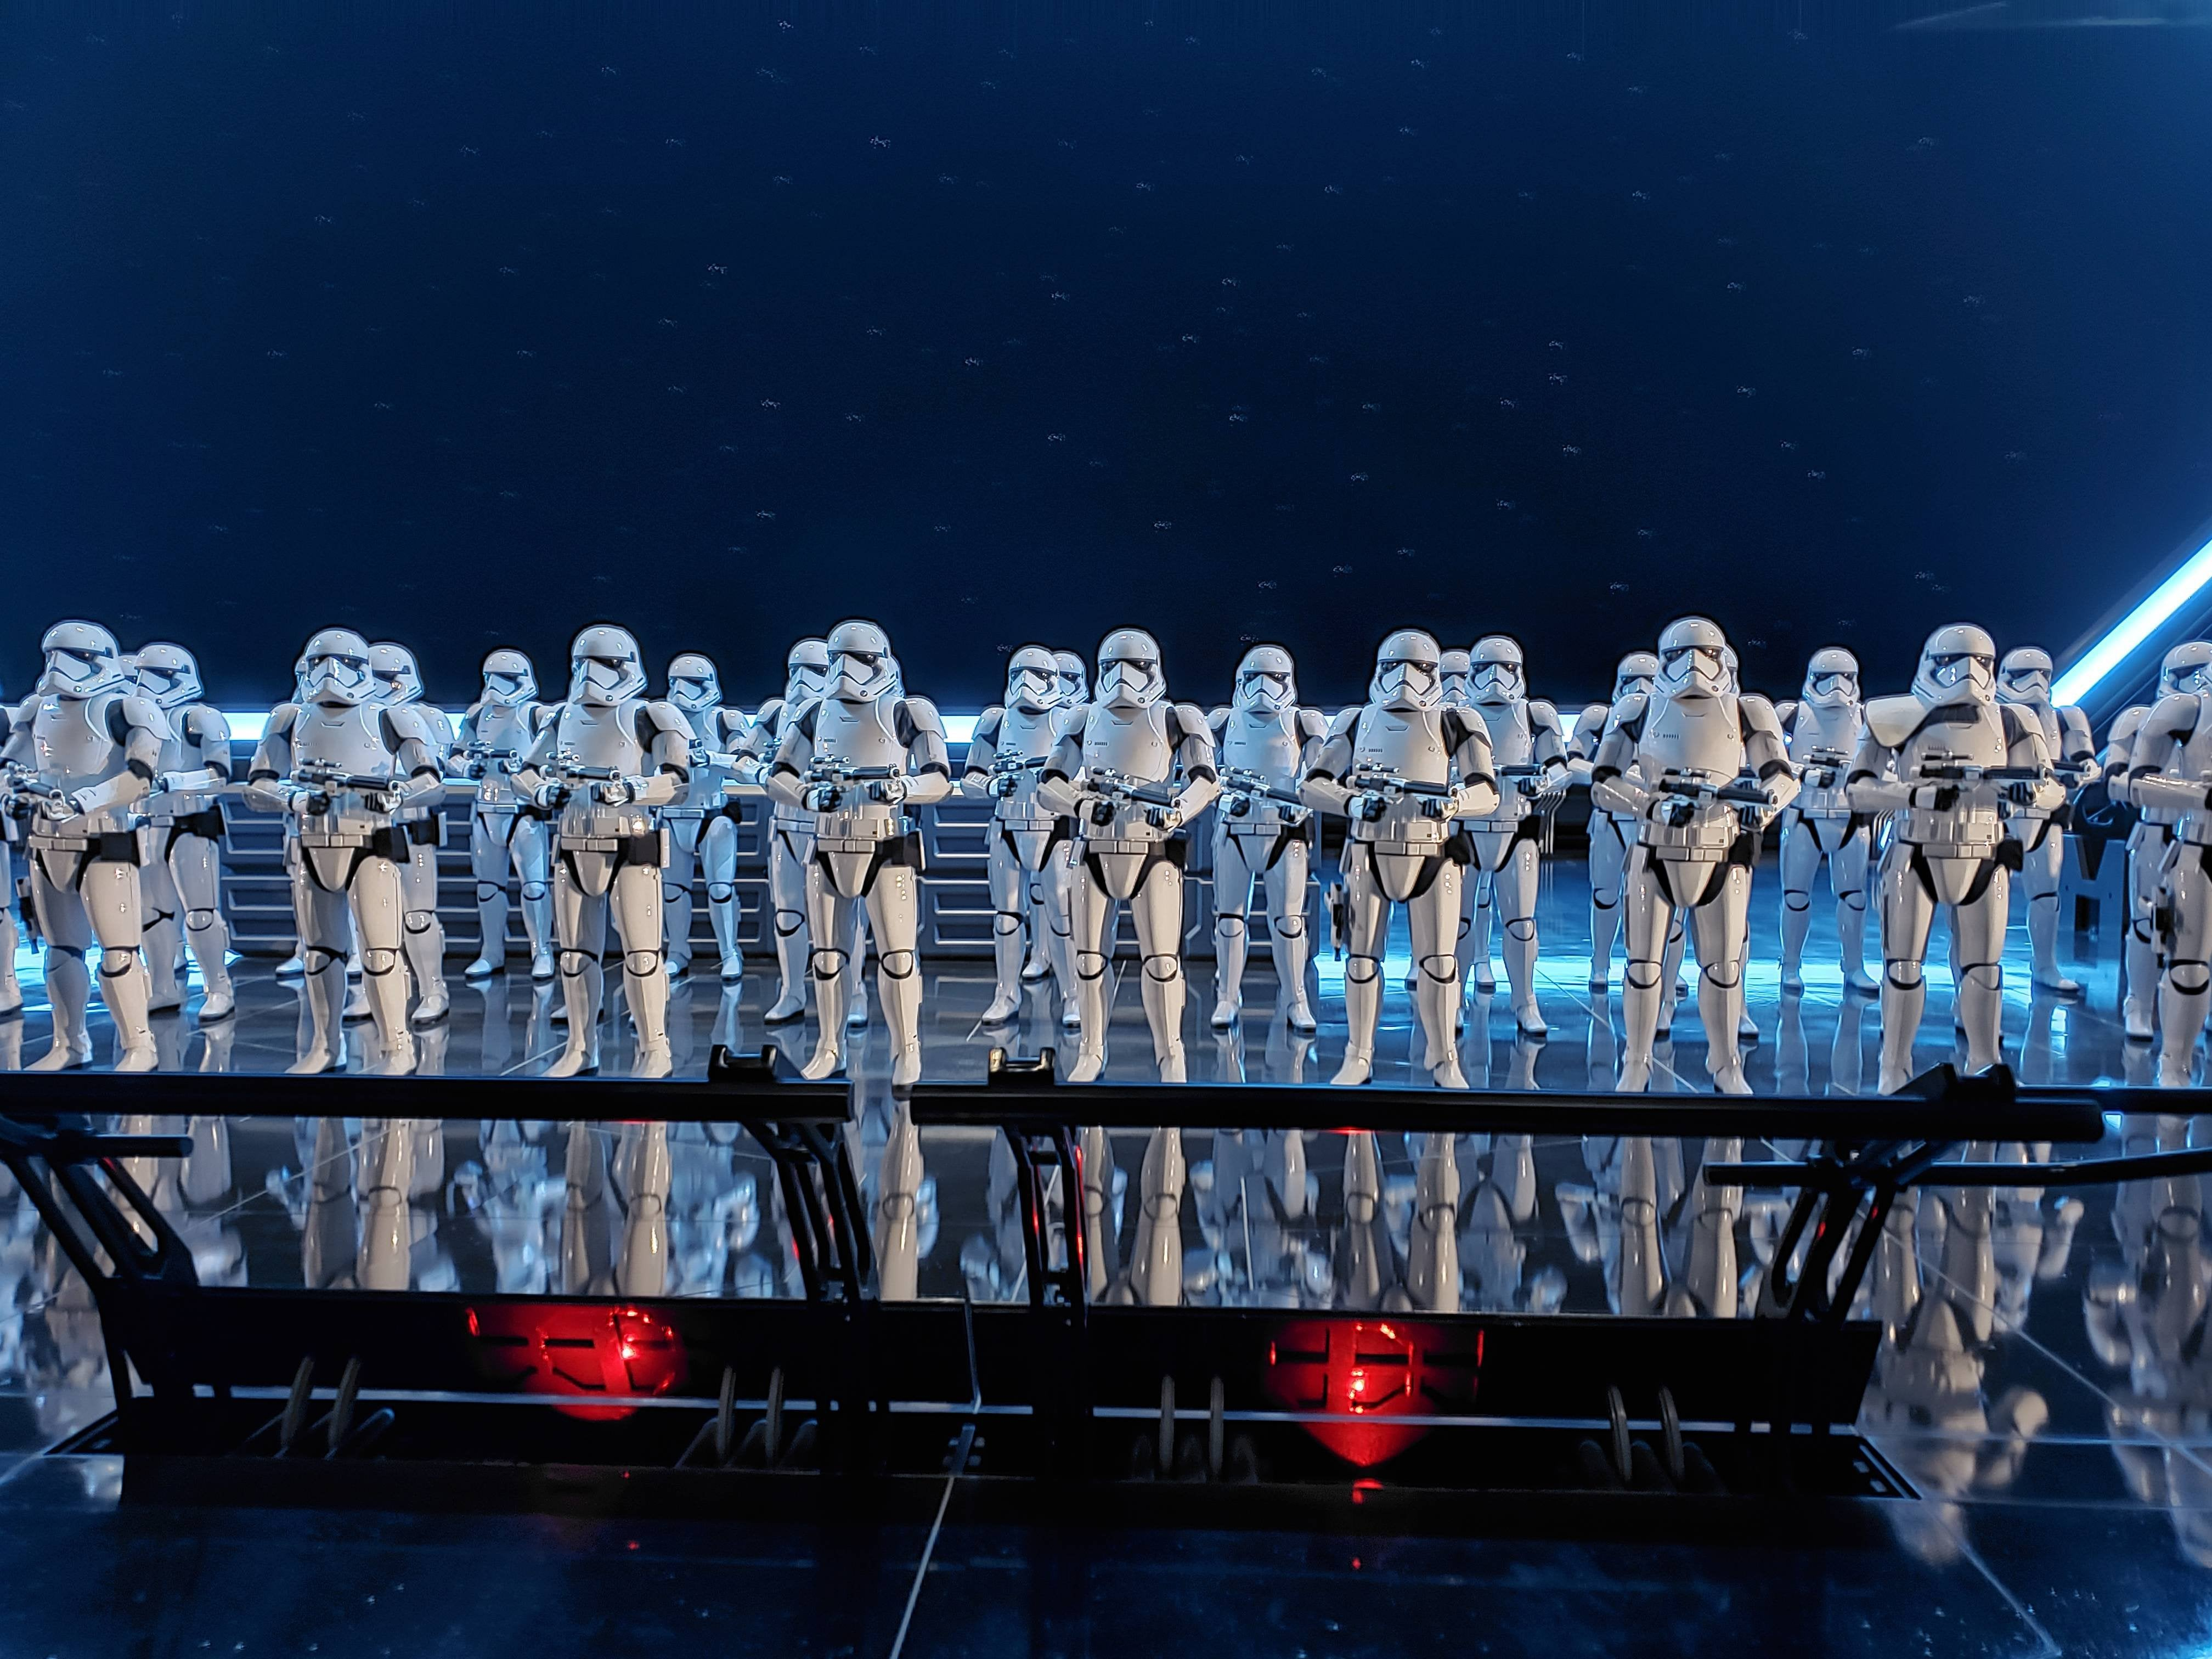 Star Wars - Lots of Stormtroopers